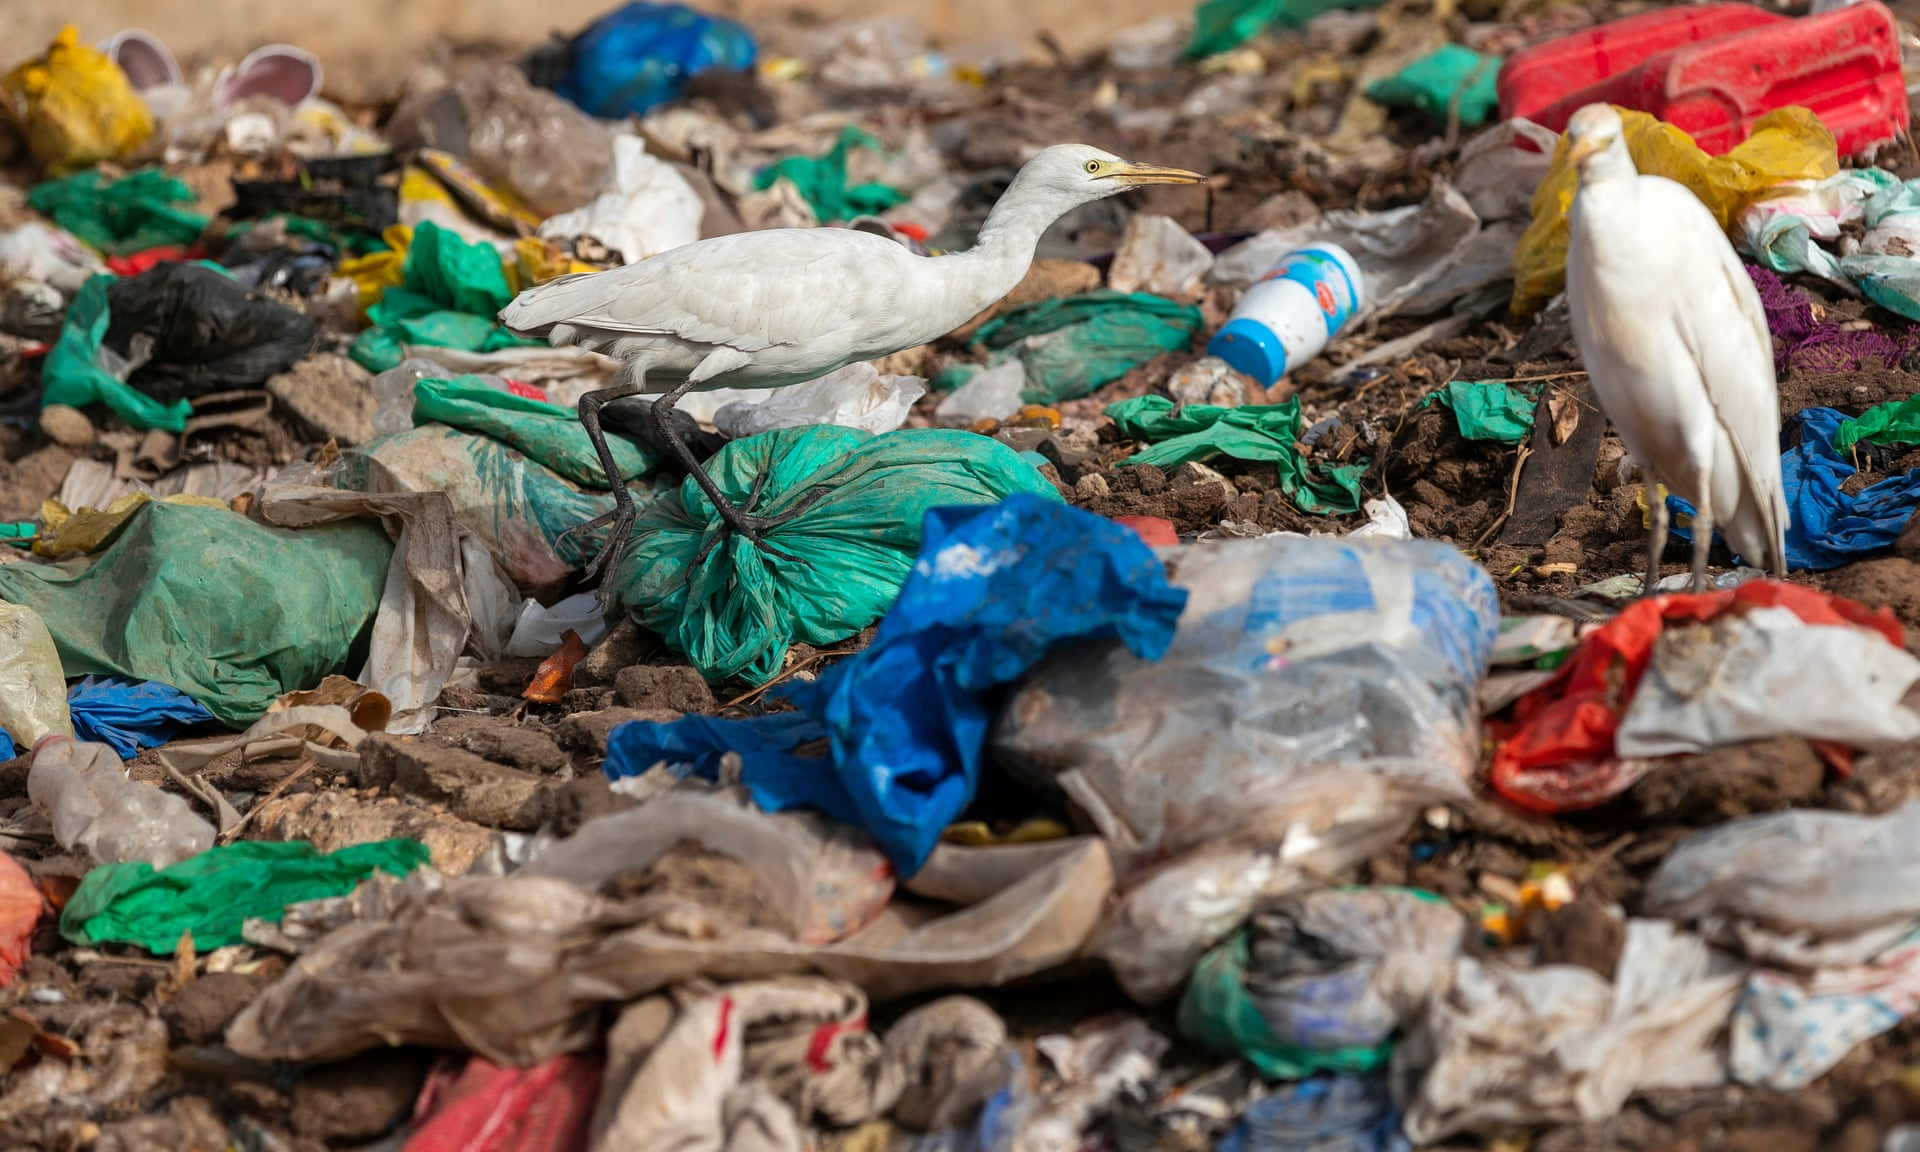 European Parliament Votes To Ban Single-use Plastics